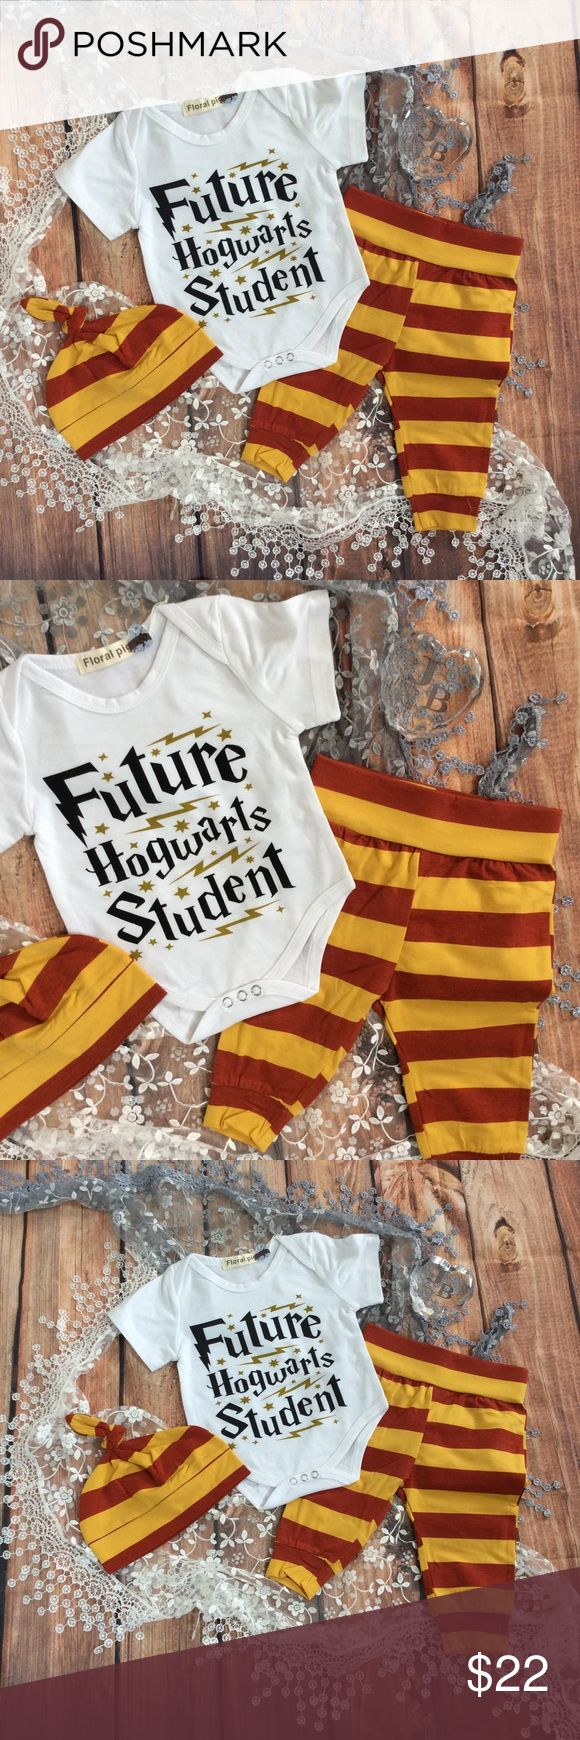 Boutique Baby FUTURE HOGWART STUDENT Harry Potter Perfect for all you HP fans out there. Baby white short sleeve onesie with FUTURE HOGWART STUDENT across the front. Gold yellow and red striped long pants and knot beanie hat perfect baby shower gift too! Matching Sets